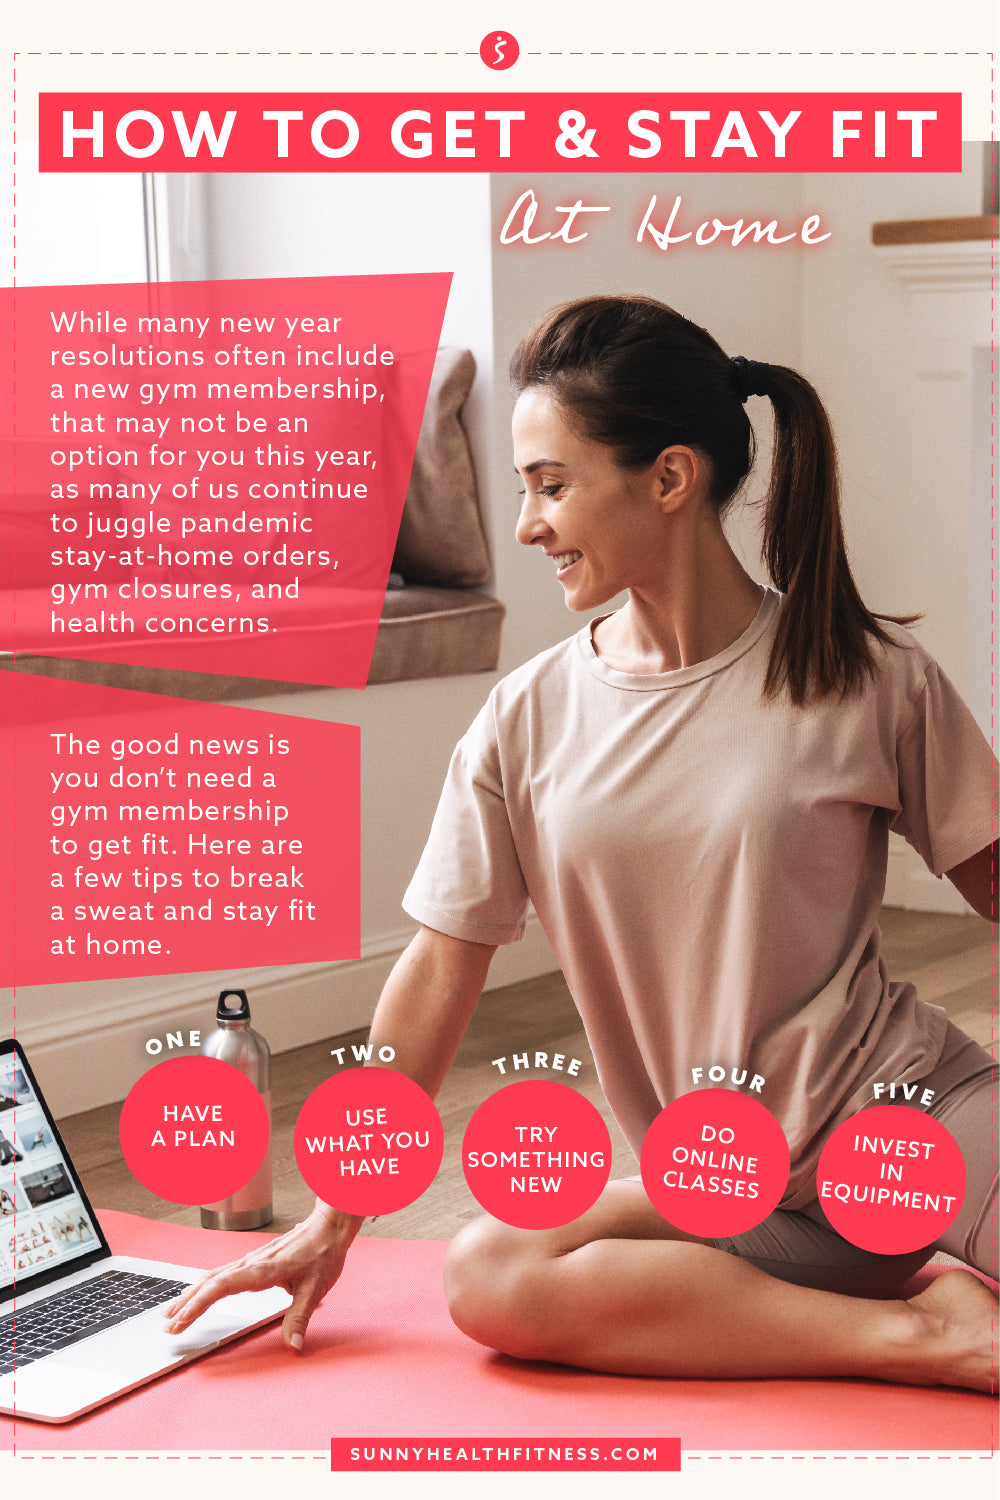 Get & Stay Fit At Home Infographic